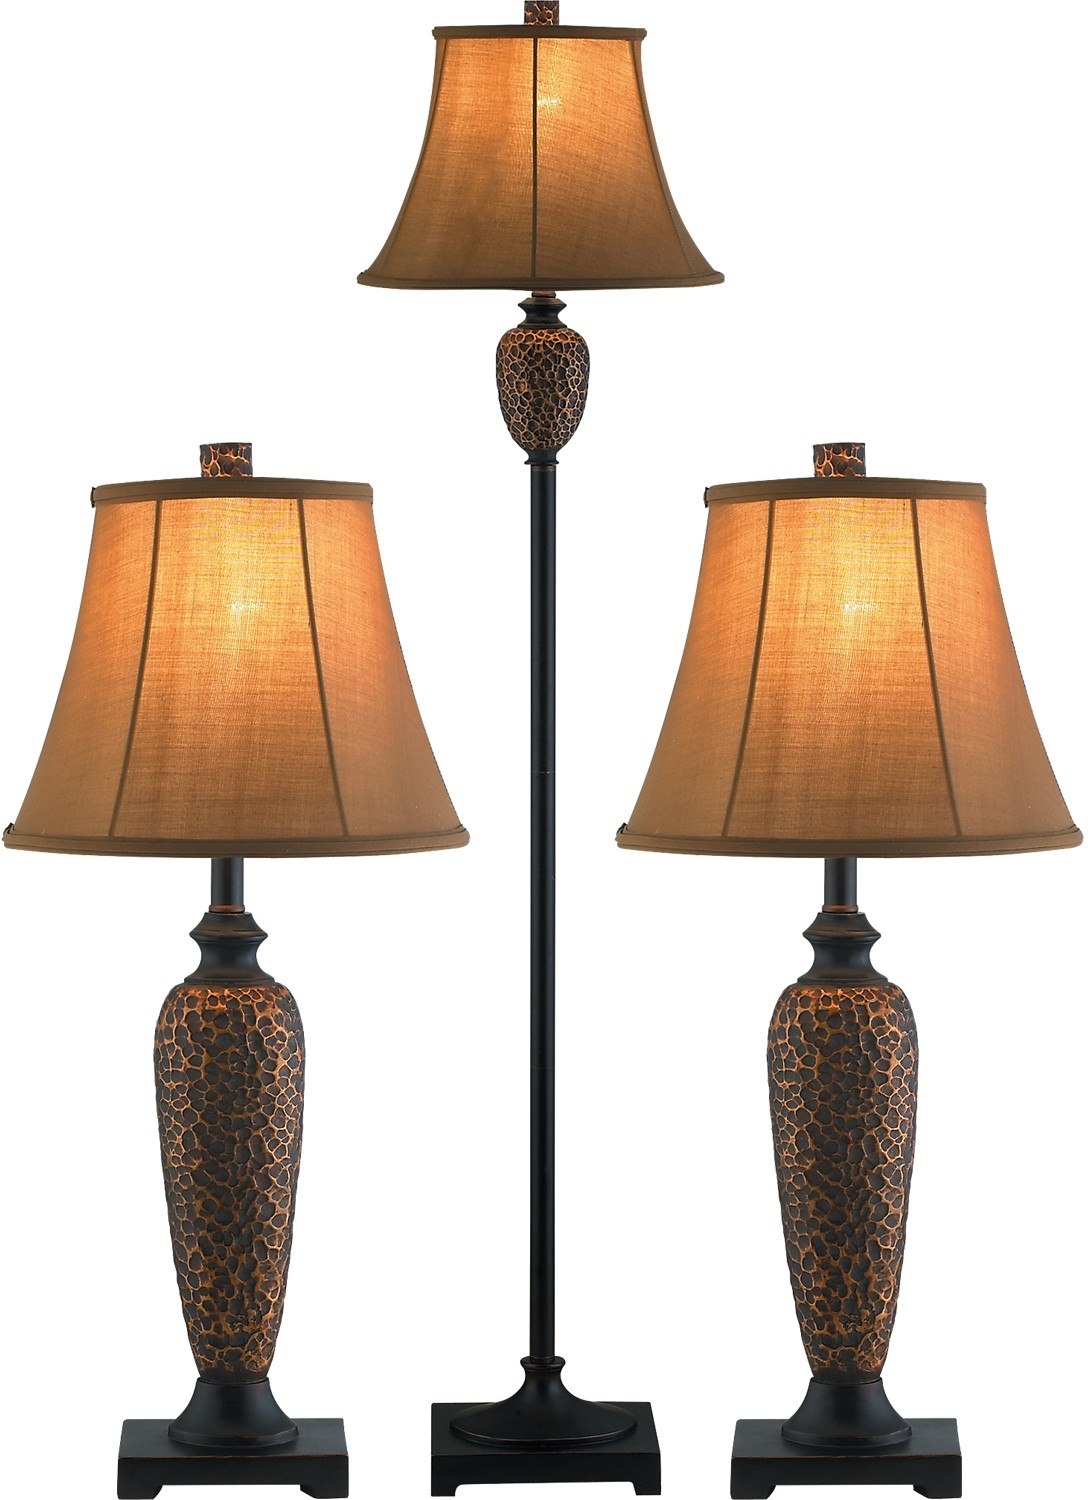 Top 10 Types Of Lamps